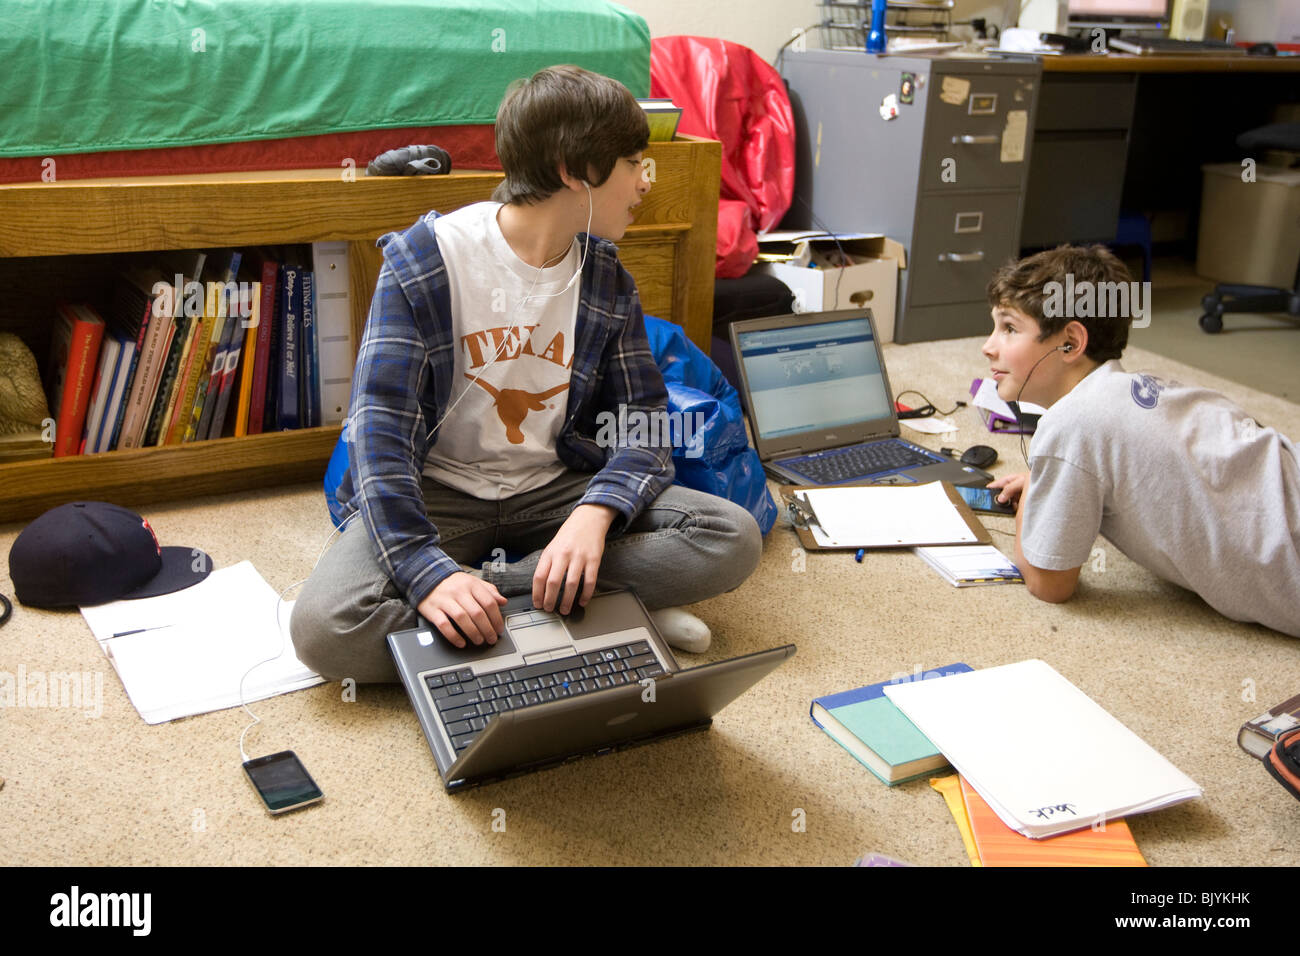 Teen boys in bedroom with laptop computer and textbooks, listening to iPod  and MP3 players with earbuds, and texting friends